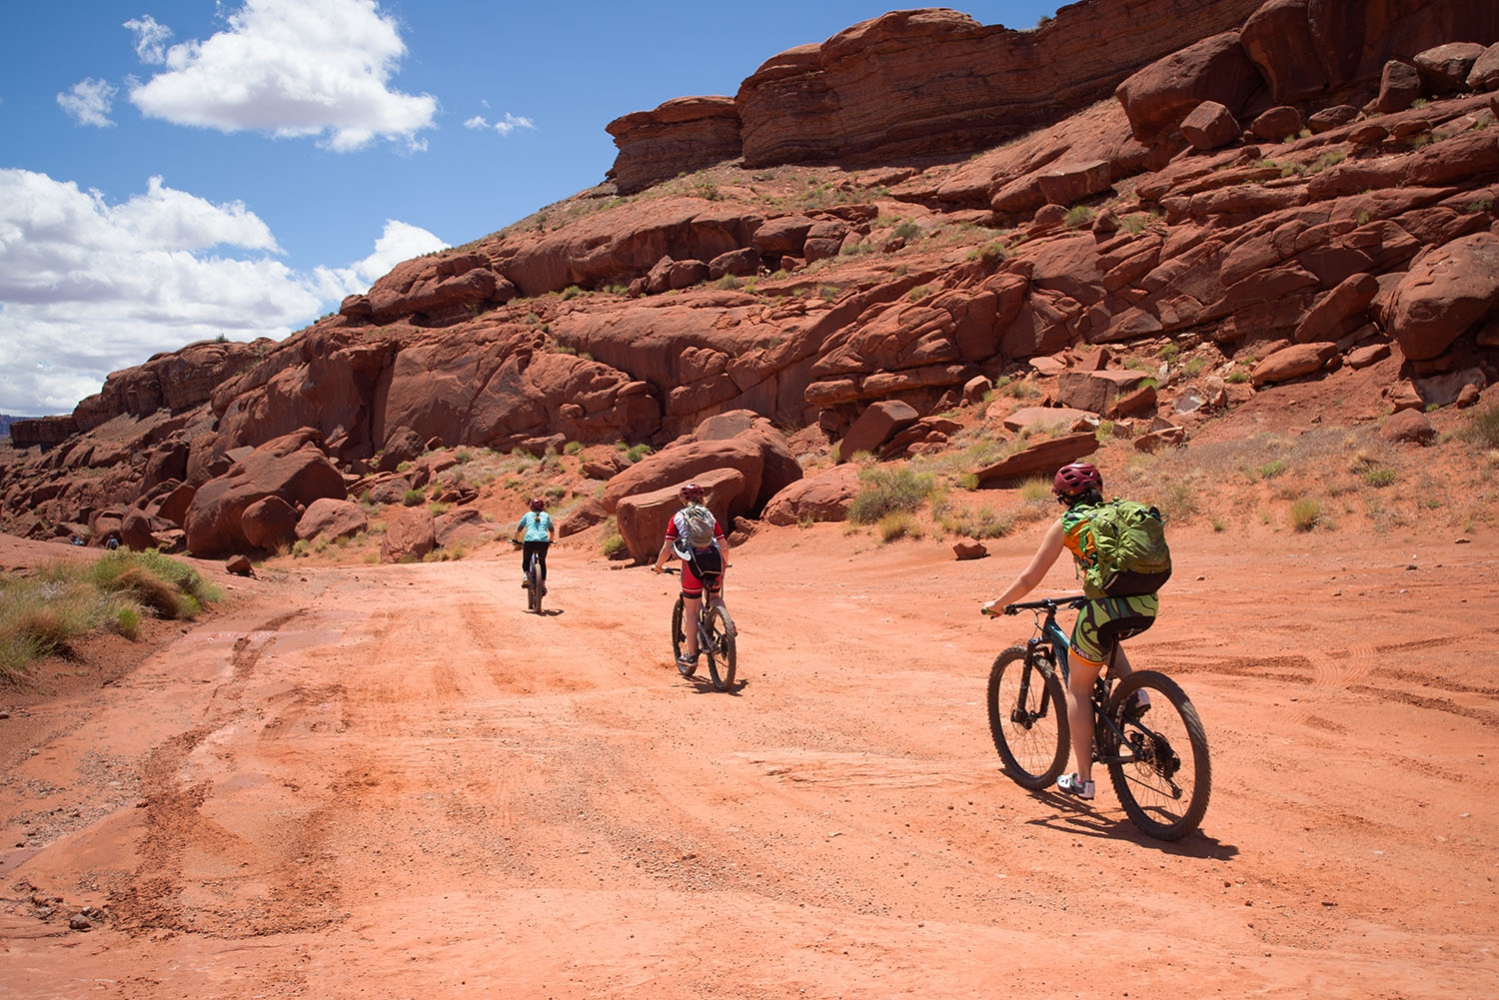 Canyonlands-National-Park-Full-Day-Guided-Mtb-Tour-Balanced-Rock-2